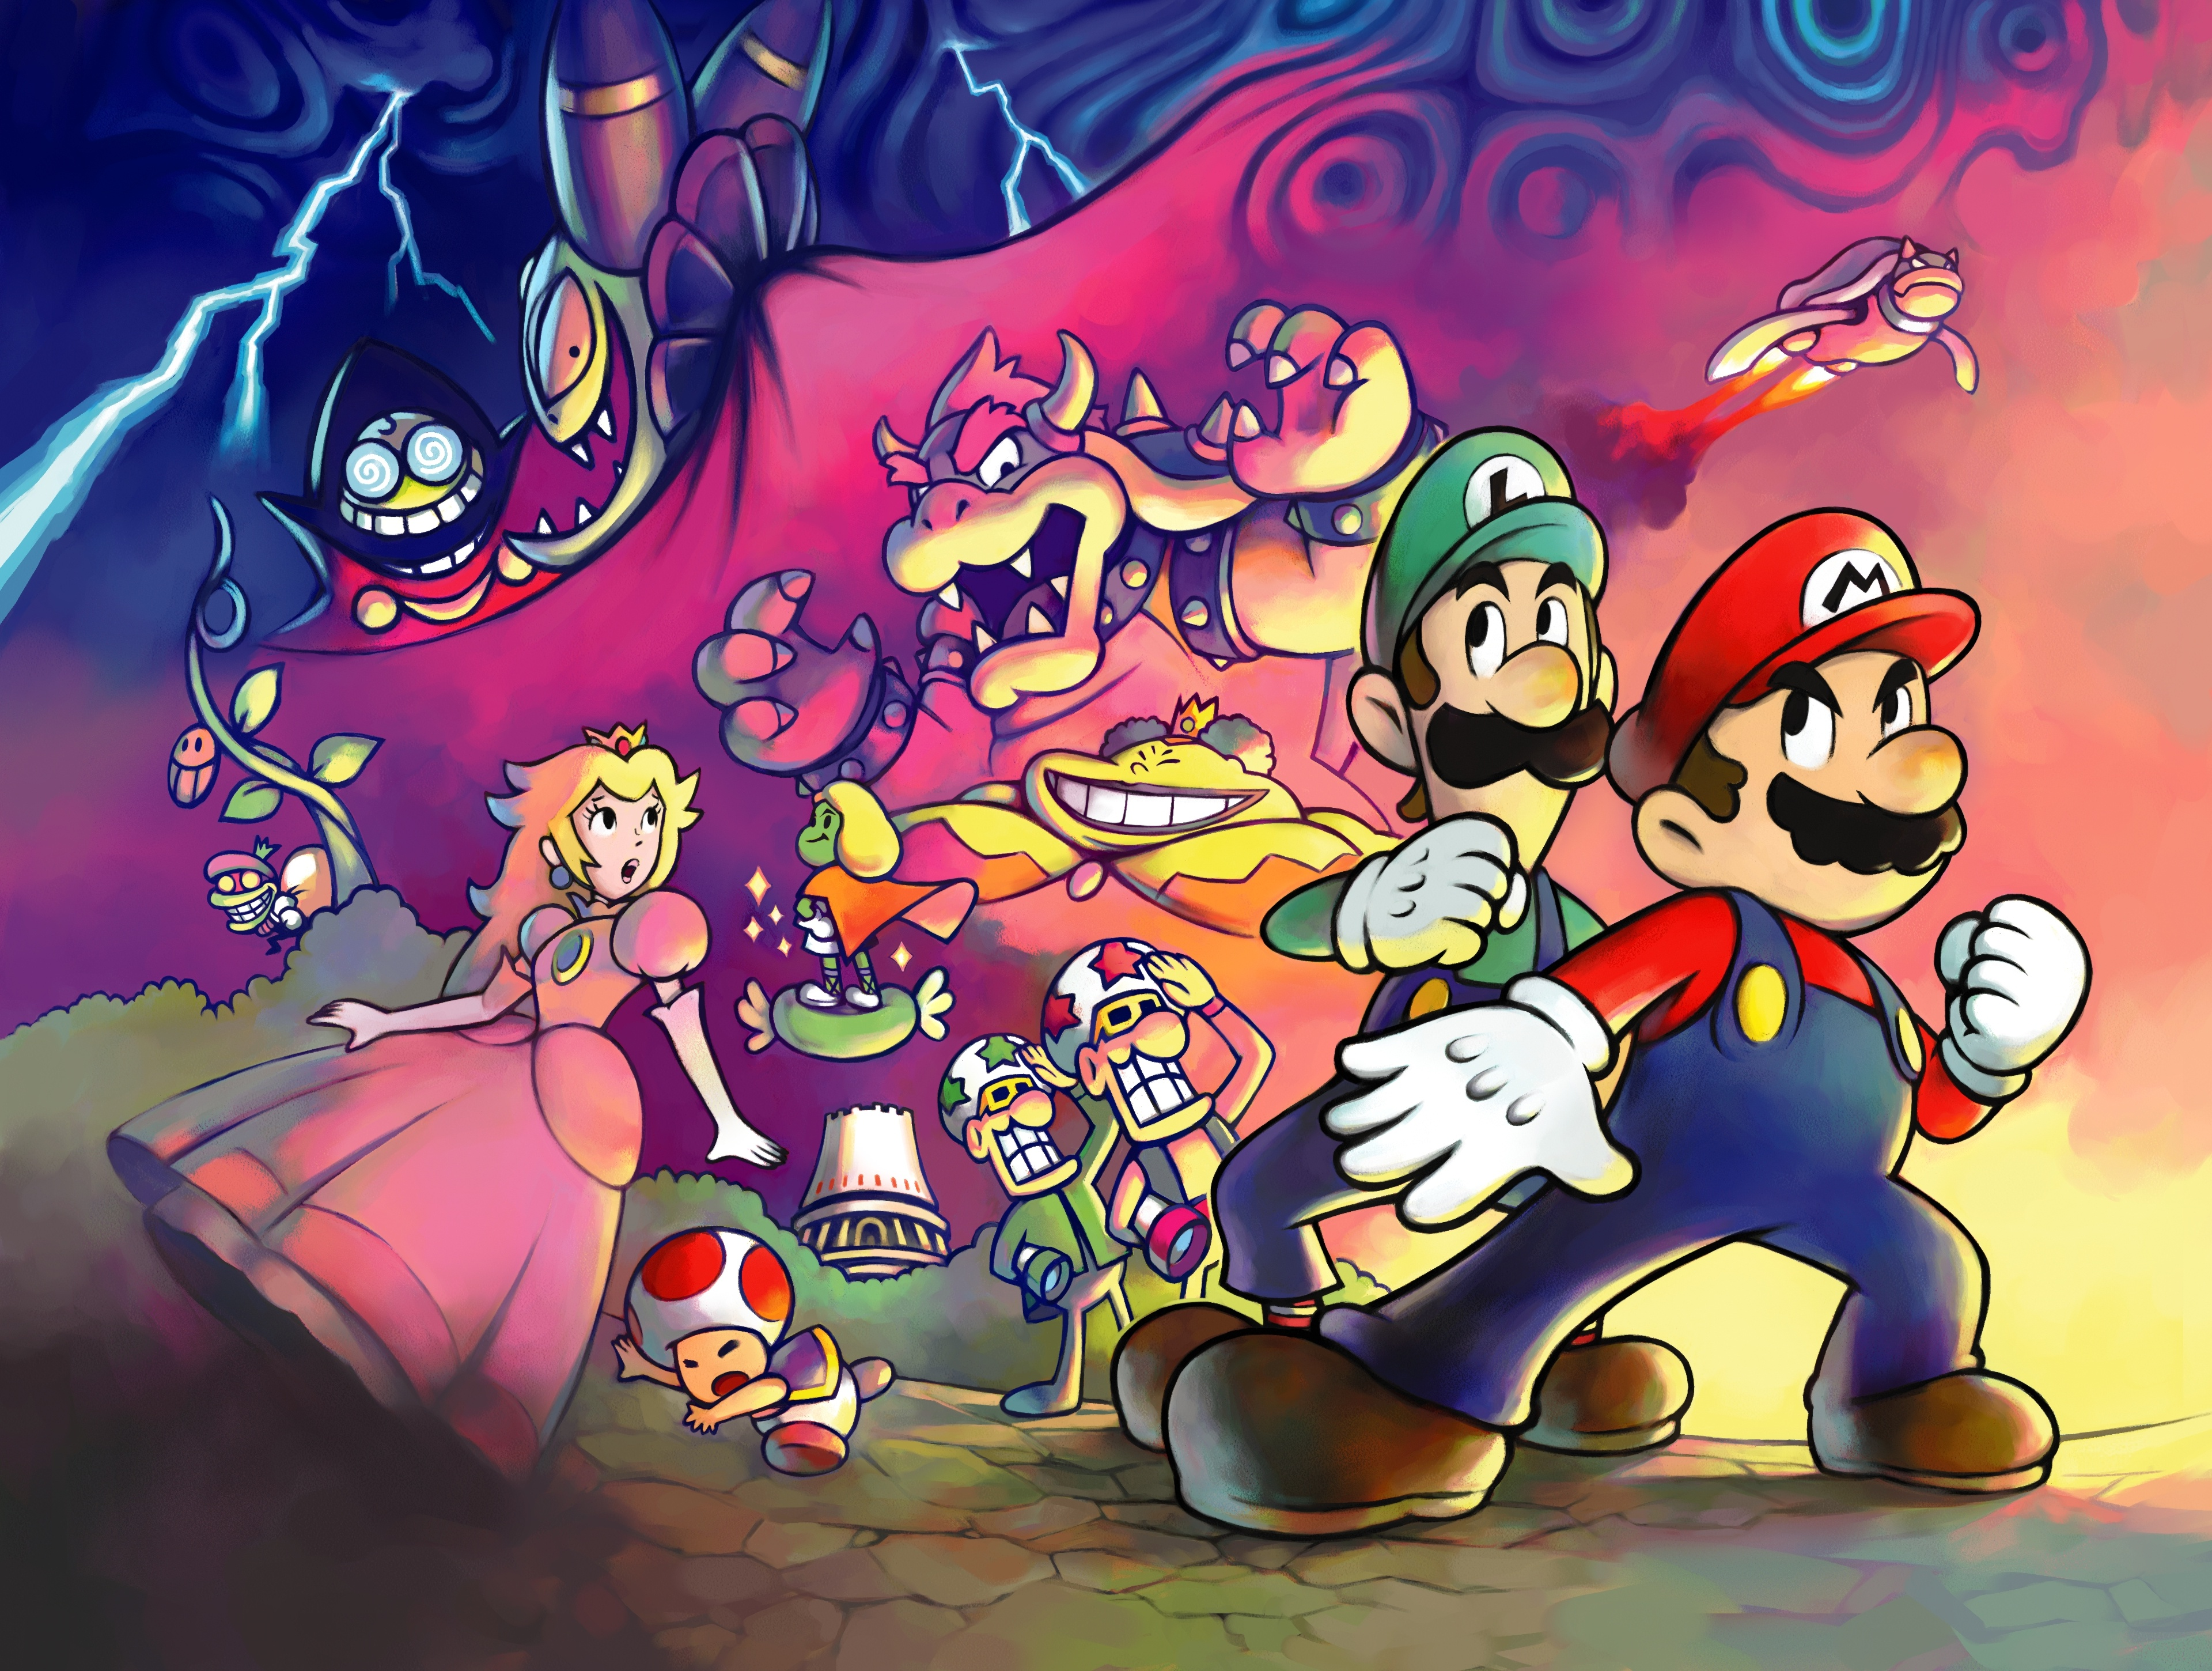 Mario luigi superstar saga 4k ultra hd wallpaper and background video game mario luigi superstar saga bowser princess peach luigi toad mario altavistaventures Gallery